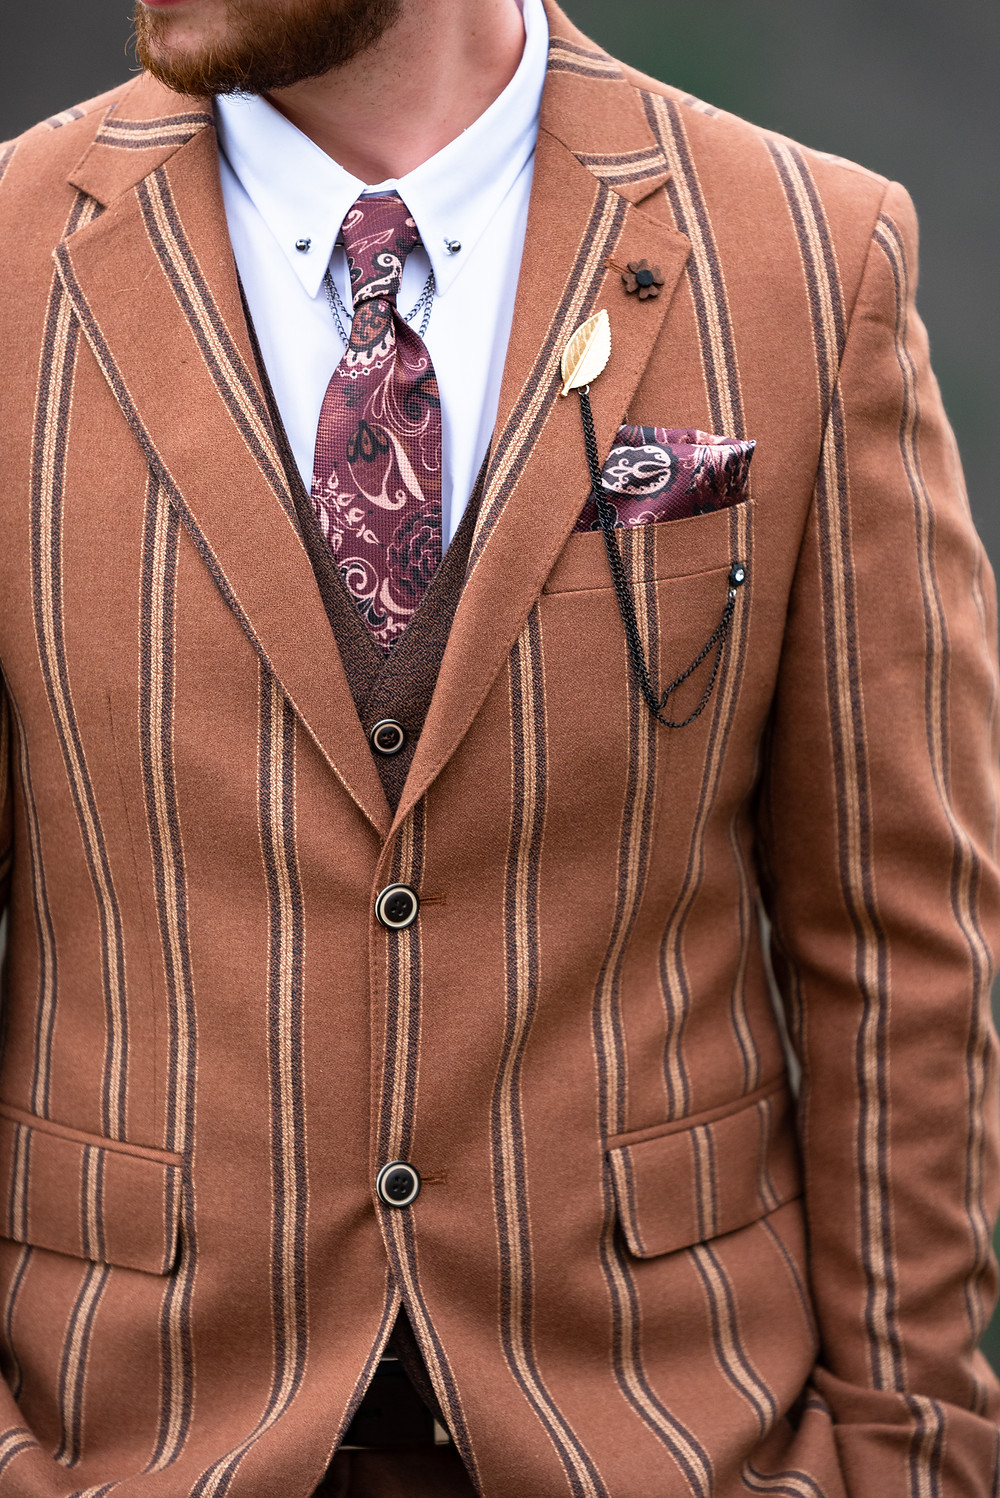 Brown pinstripe suit with paisly tie and pocket square